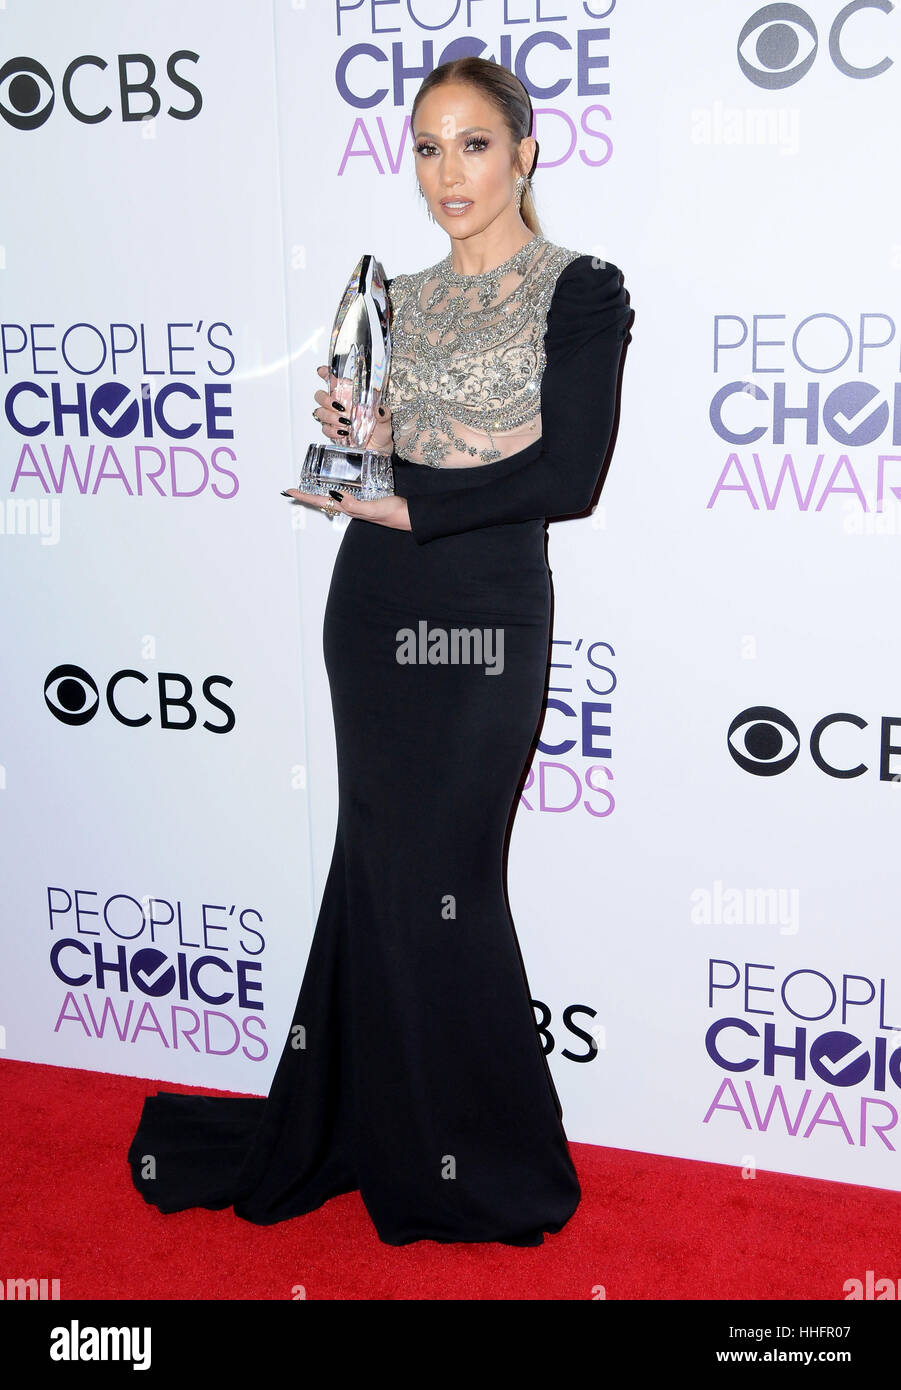 Los Angeles, CA, USA. 18 janvier, 2017. Jennifer Lopez. 2017 People's Choice Awards 2017 Salle de presse tenue Photo Stock